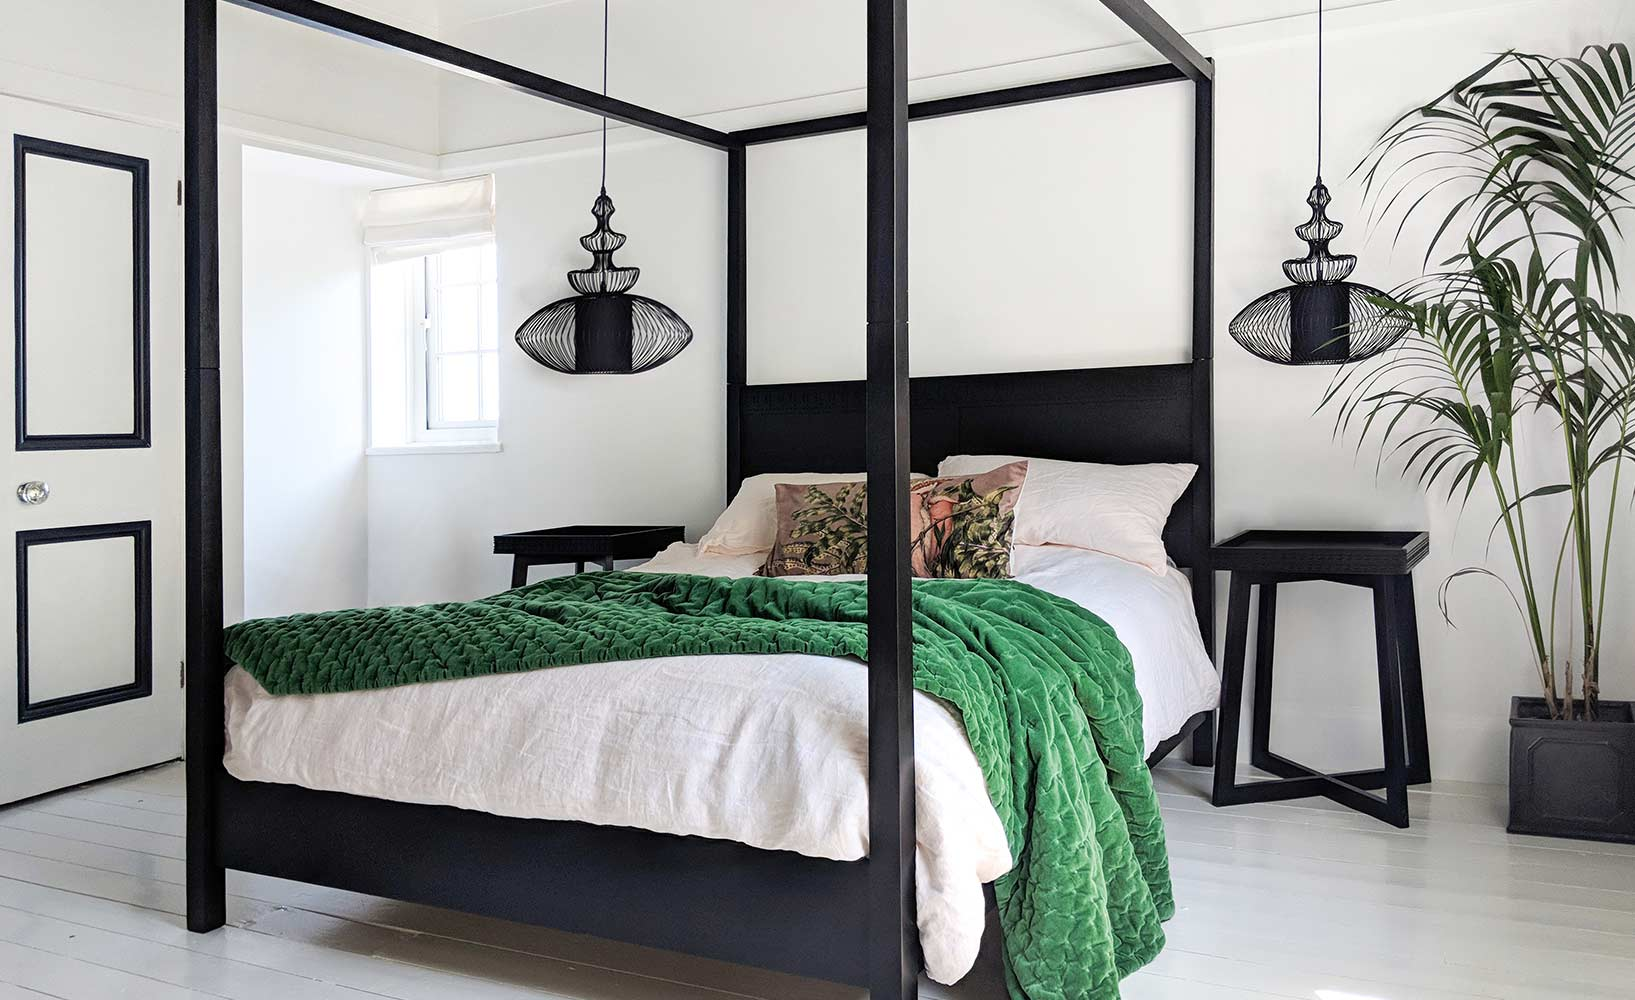 der vorteil von massivholzbetten in jedem schlafzimmer. Black Bedroom Furniture Sets. Home Design Ideas